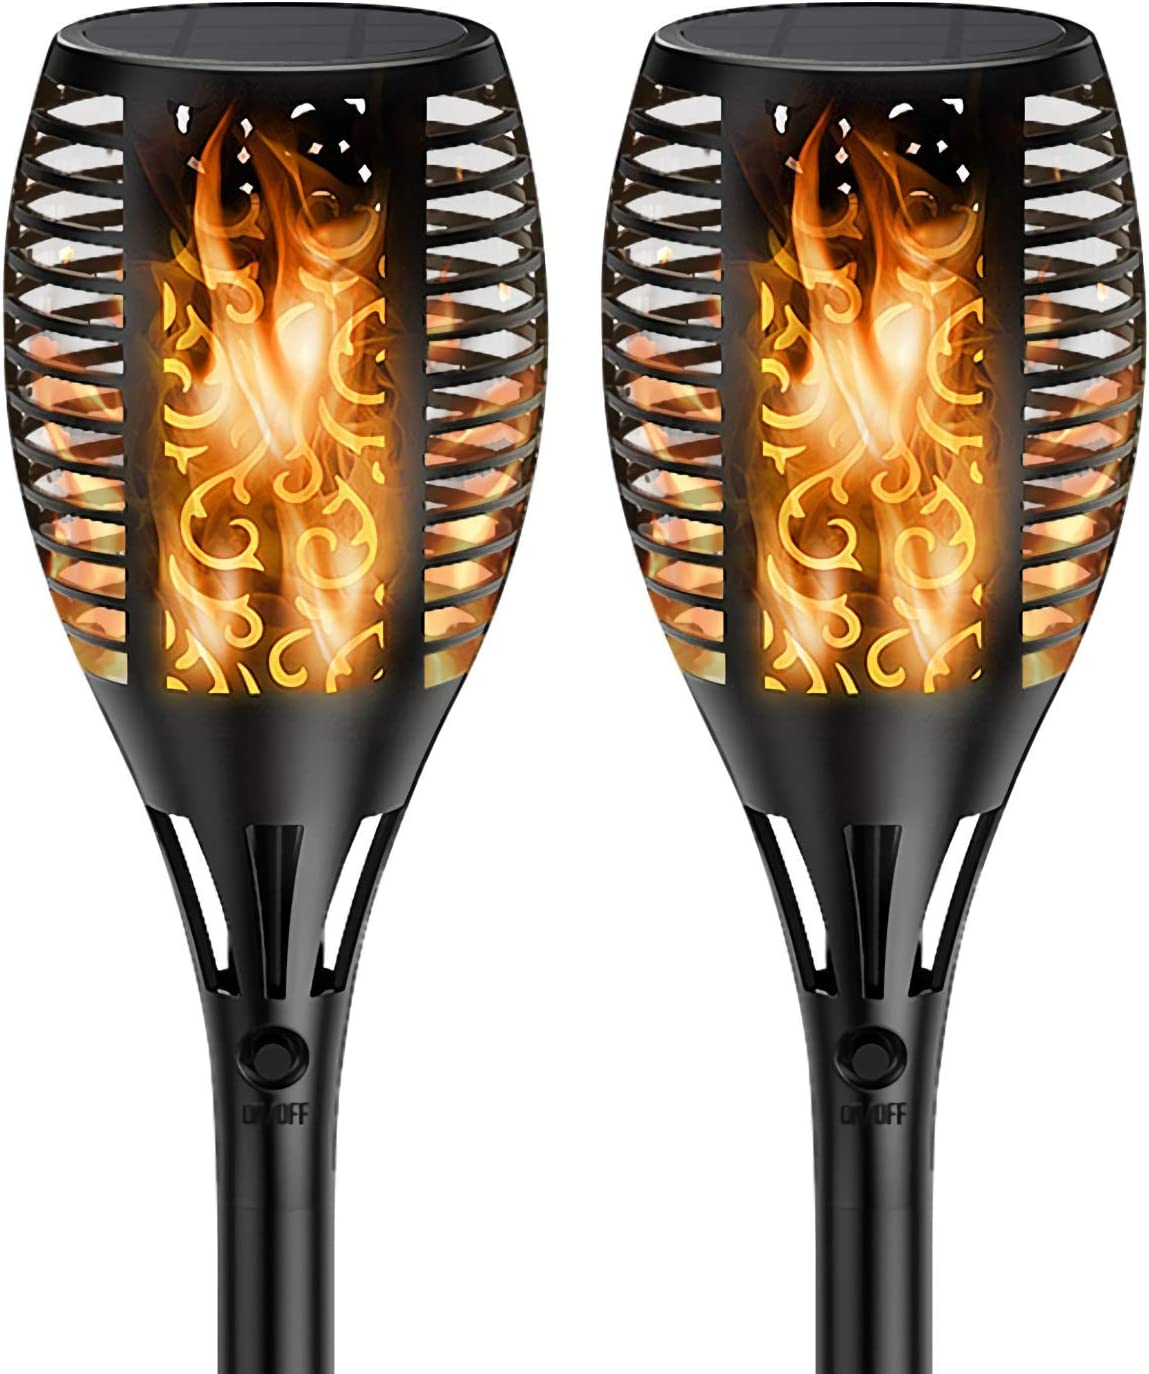 KIOVINO 2 Pack Solar Torch Lights Outdoor Flame Flickering Solar Lights Upgraded Waterproof 96 LED Solar Torches Pathway Landscape Garden Yard Decoration 2 Pack